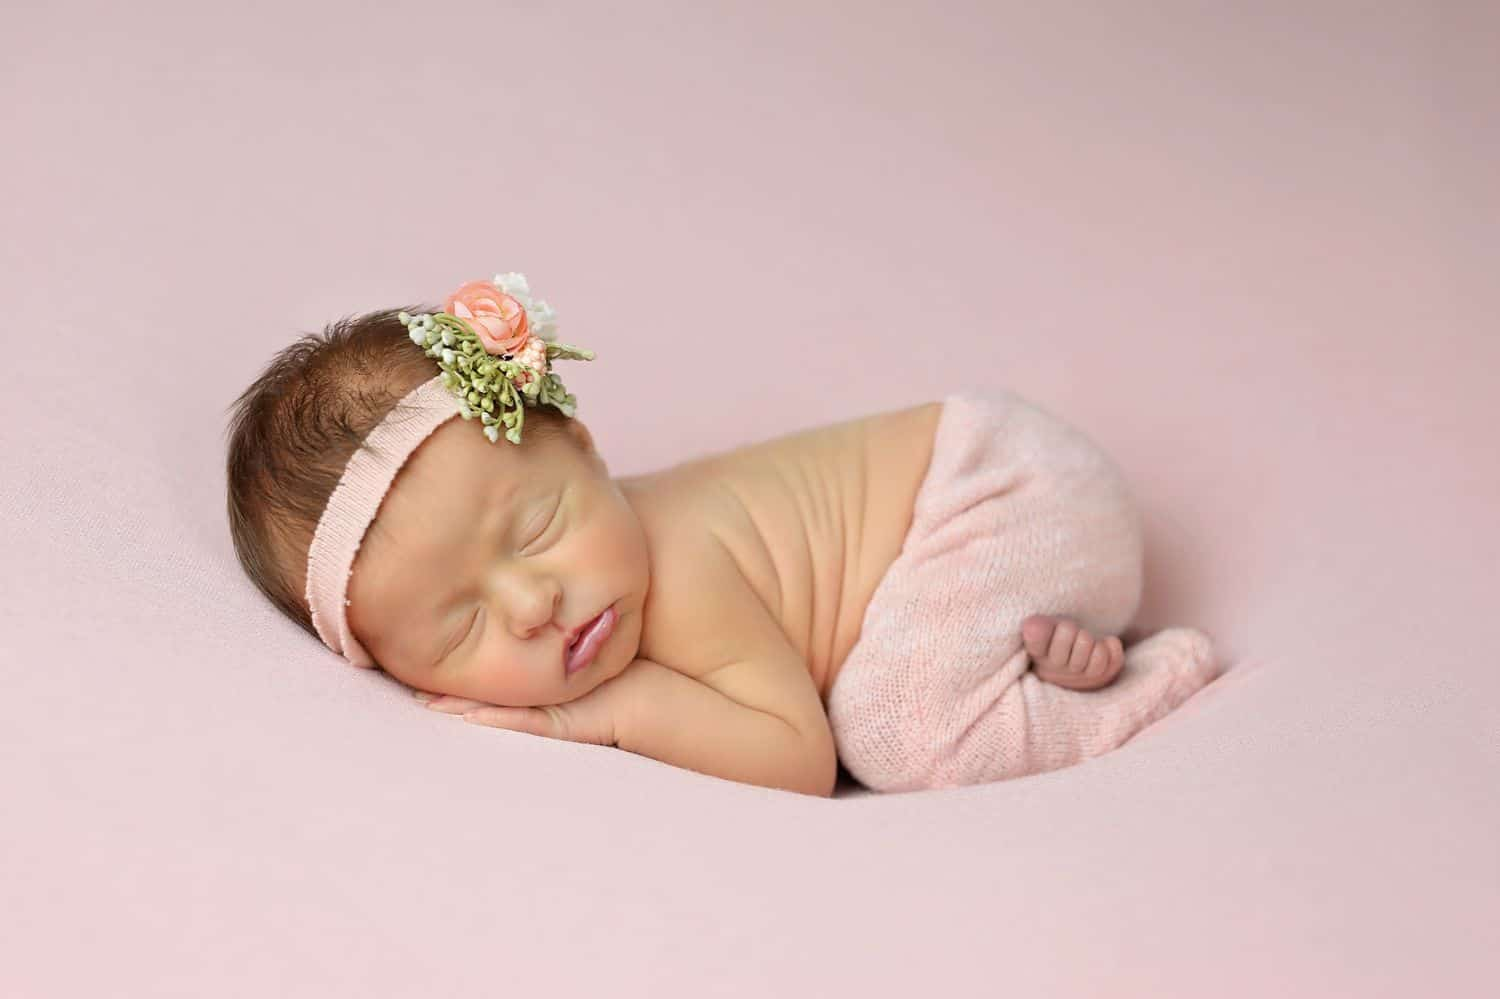 How To Attract New Clients In 3 Bold Business Moves: Newborn baby on pink blanket by Cassie Clayshulte